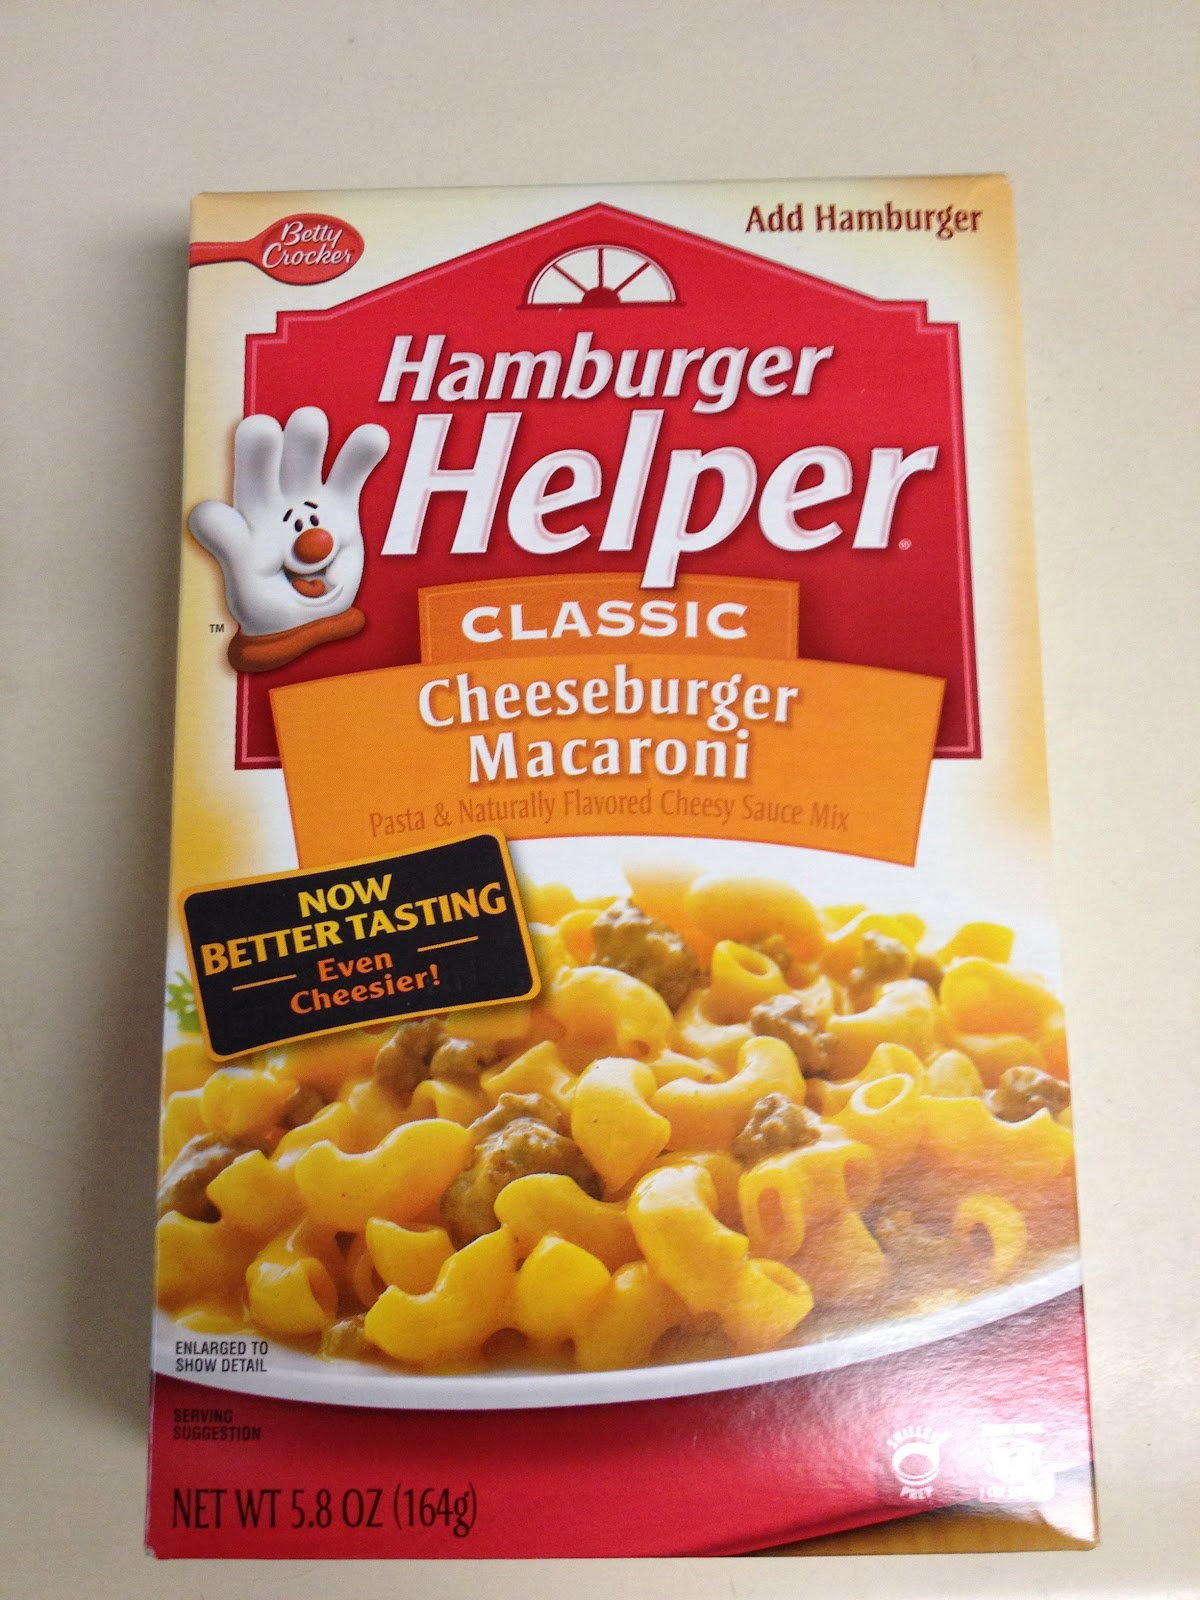 Sometimes it's those simple comforts that hit the spot best. I grew up in health-conscious home where things like Hamburger Helper were only served on very rare occasions.